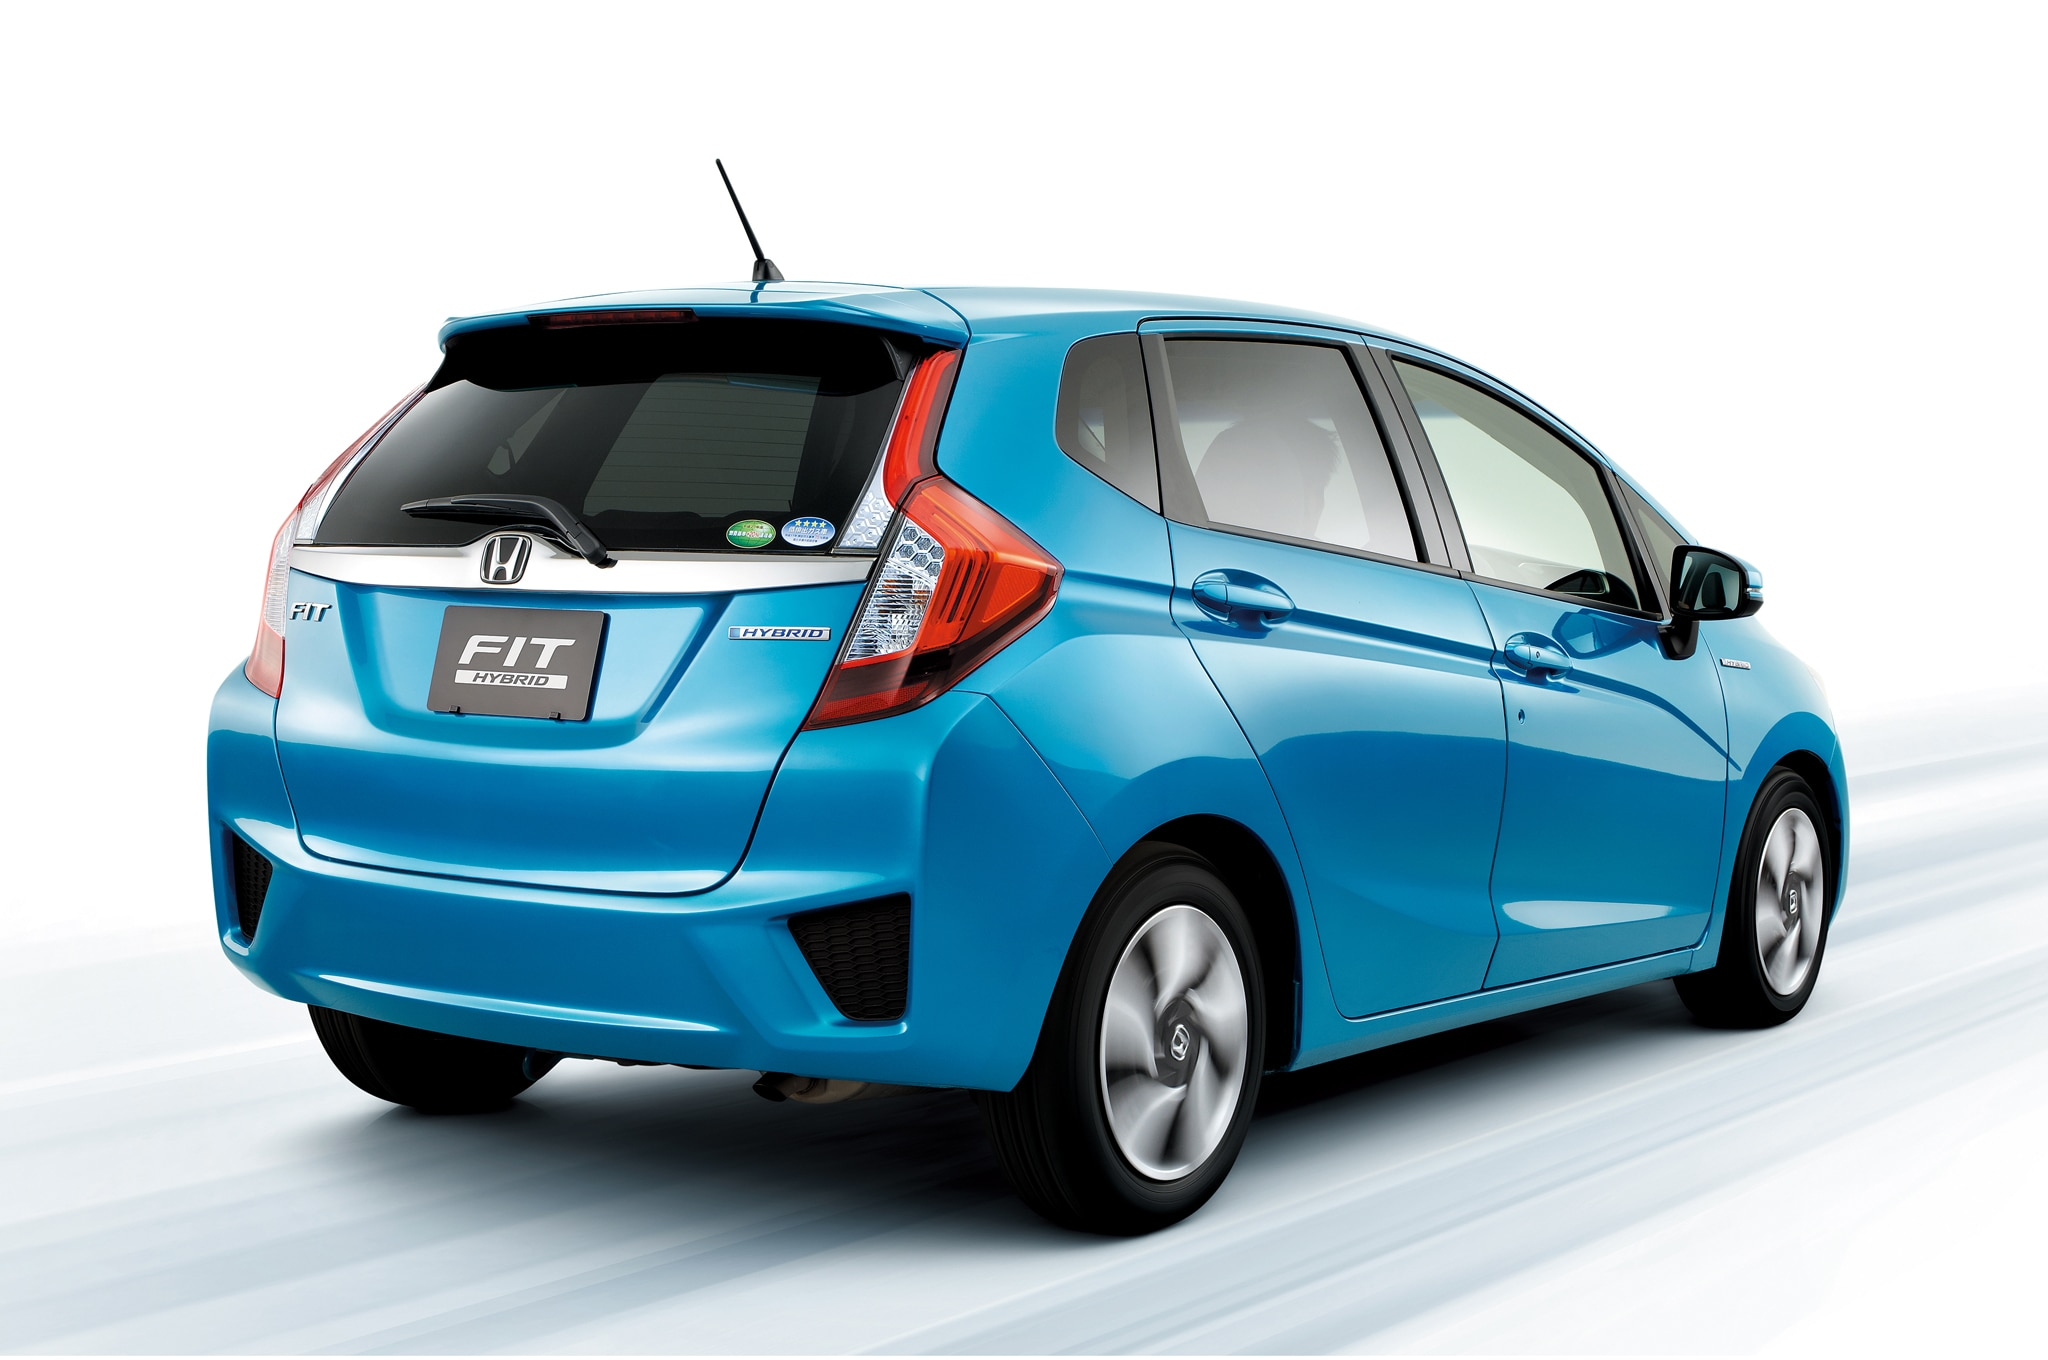 2015 honda fit transmissions to be built in mexico for Honda fit 0 60